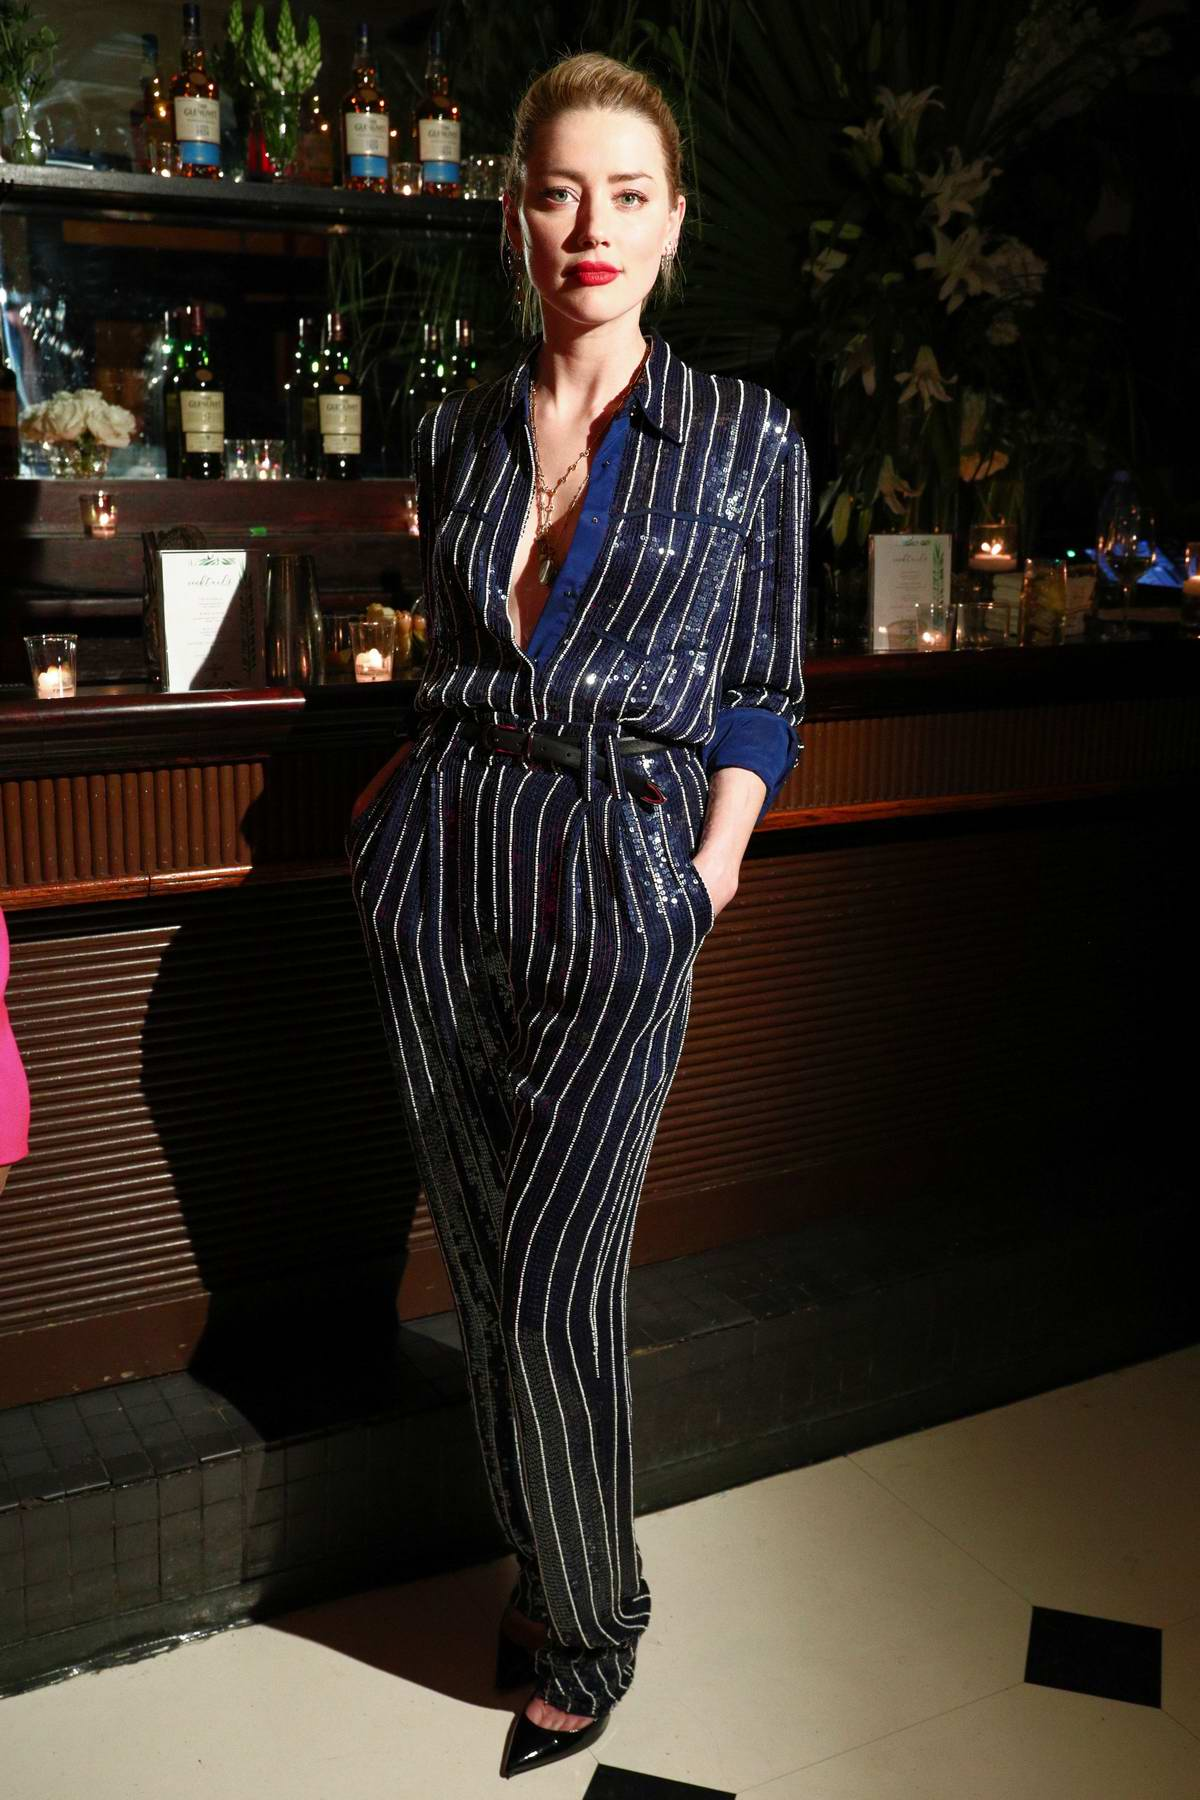 Amber Heard attends the Glenlivet Hosts Conversations For Change dinner honoring Lisa Borders in New York City